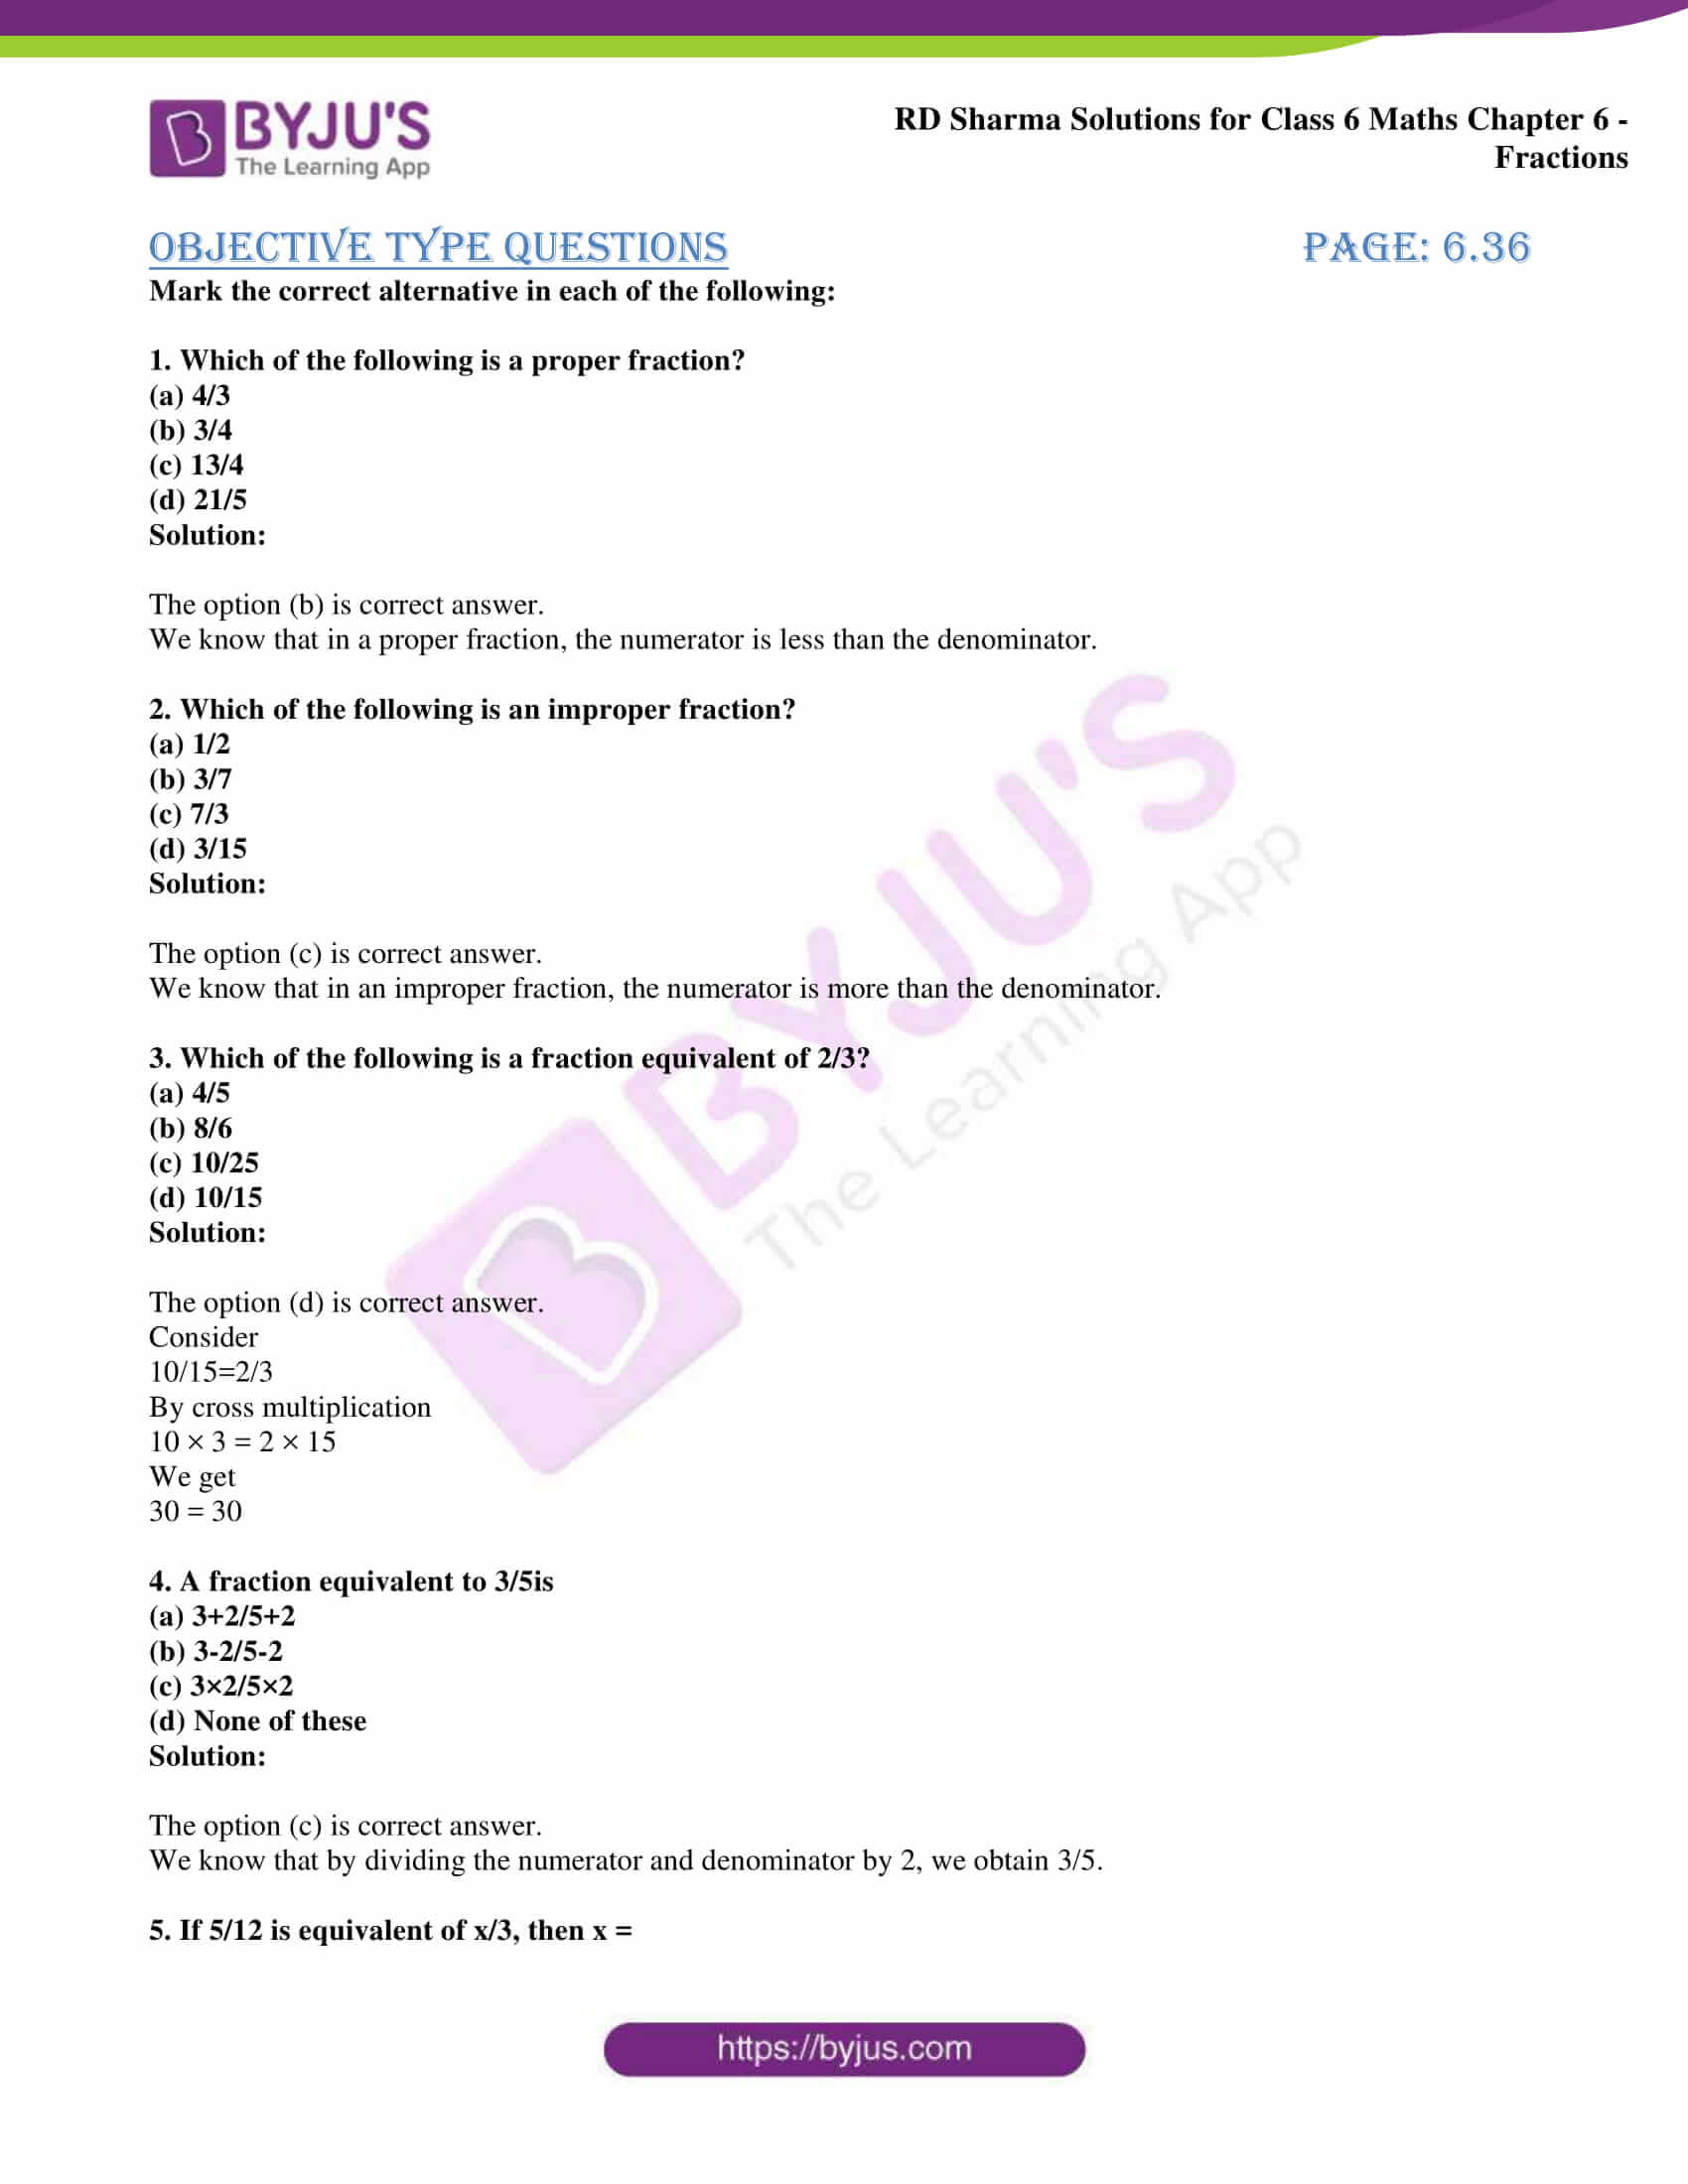 Rd Sharma Solutions For Class 6 Chapter 6 Fraction For